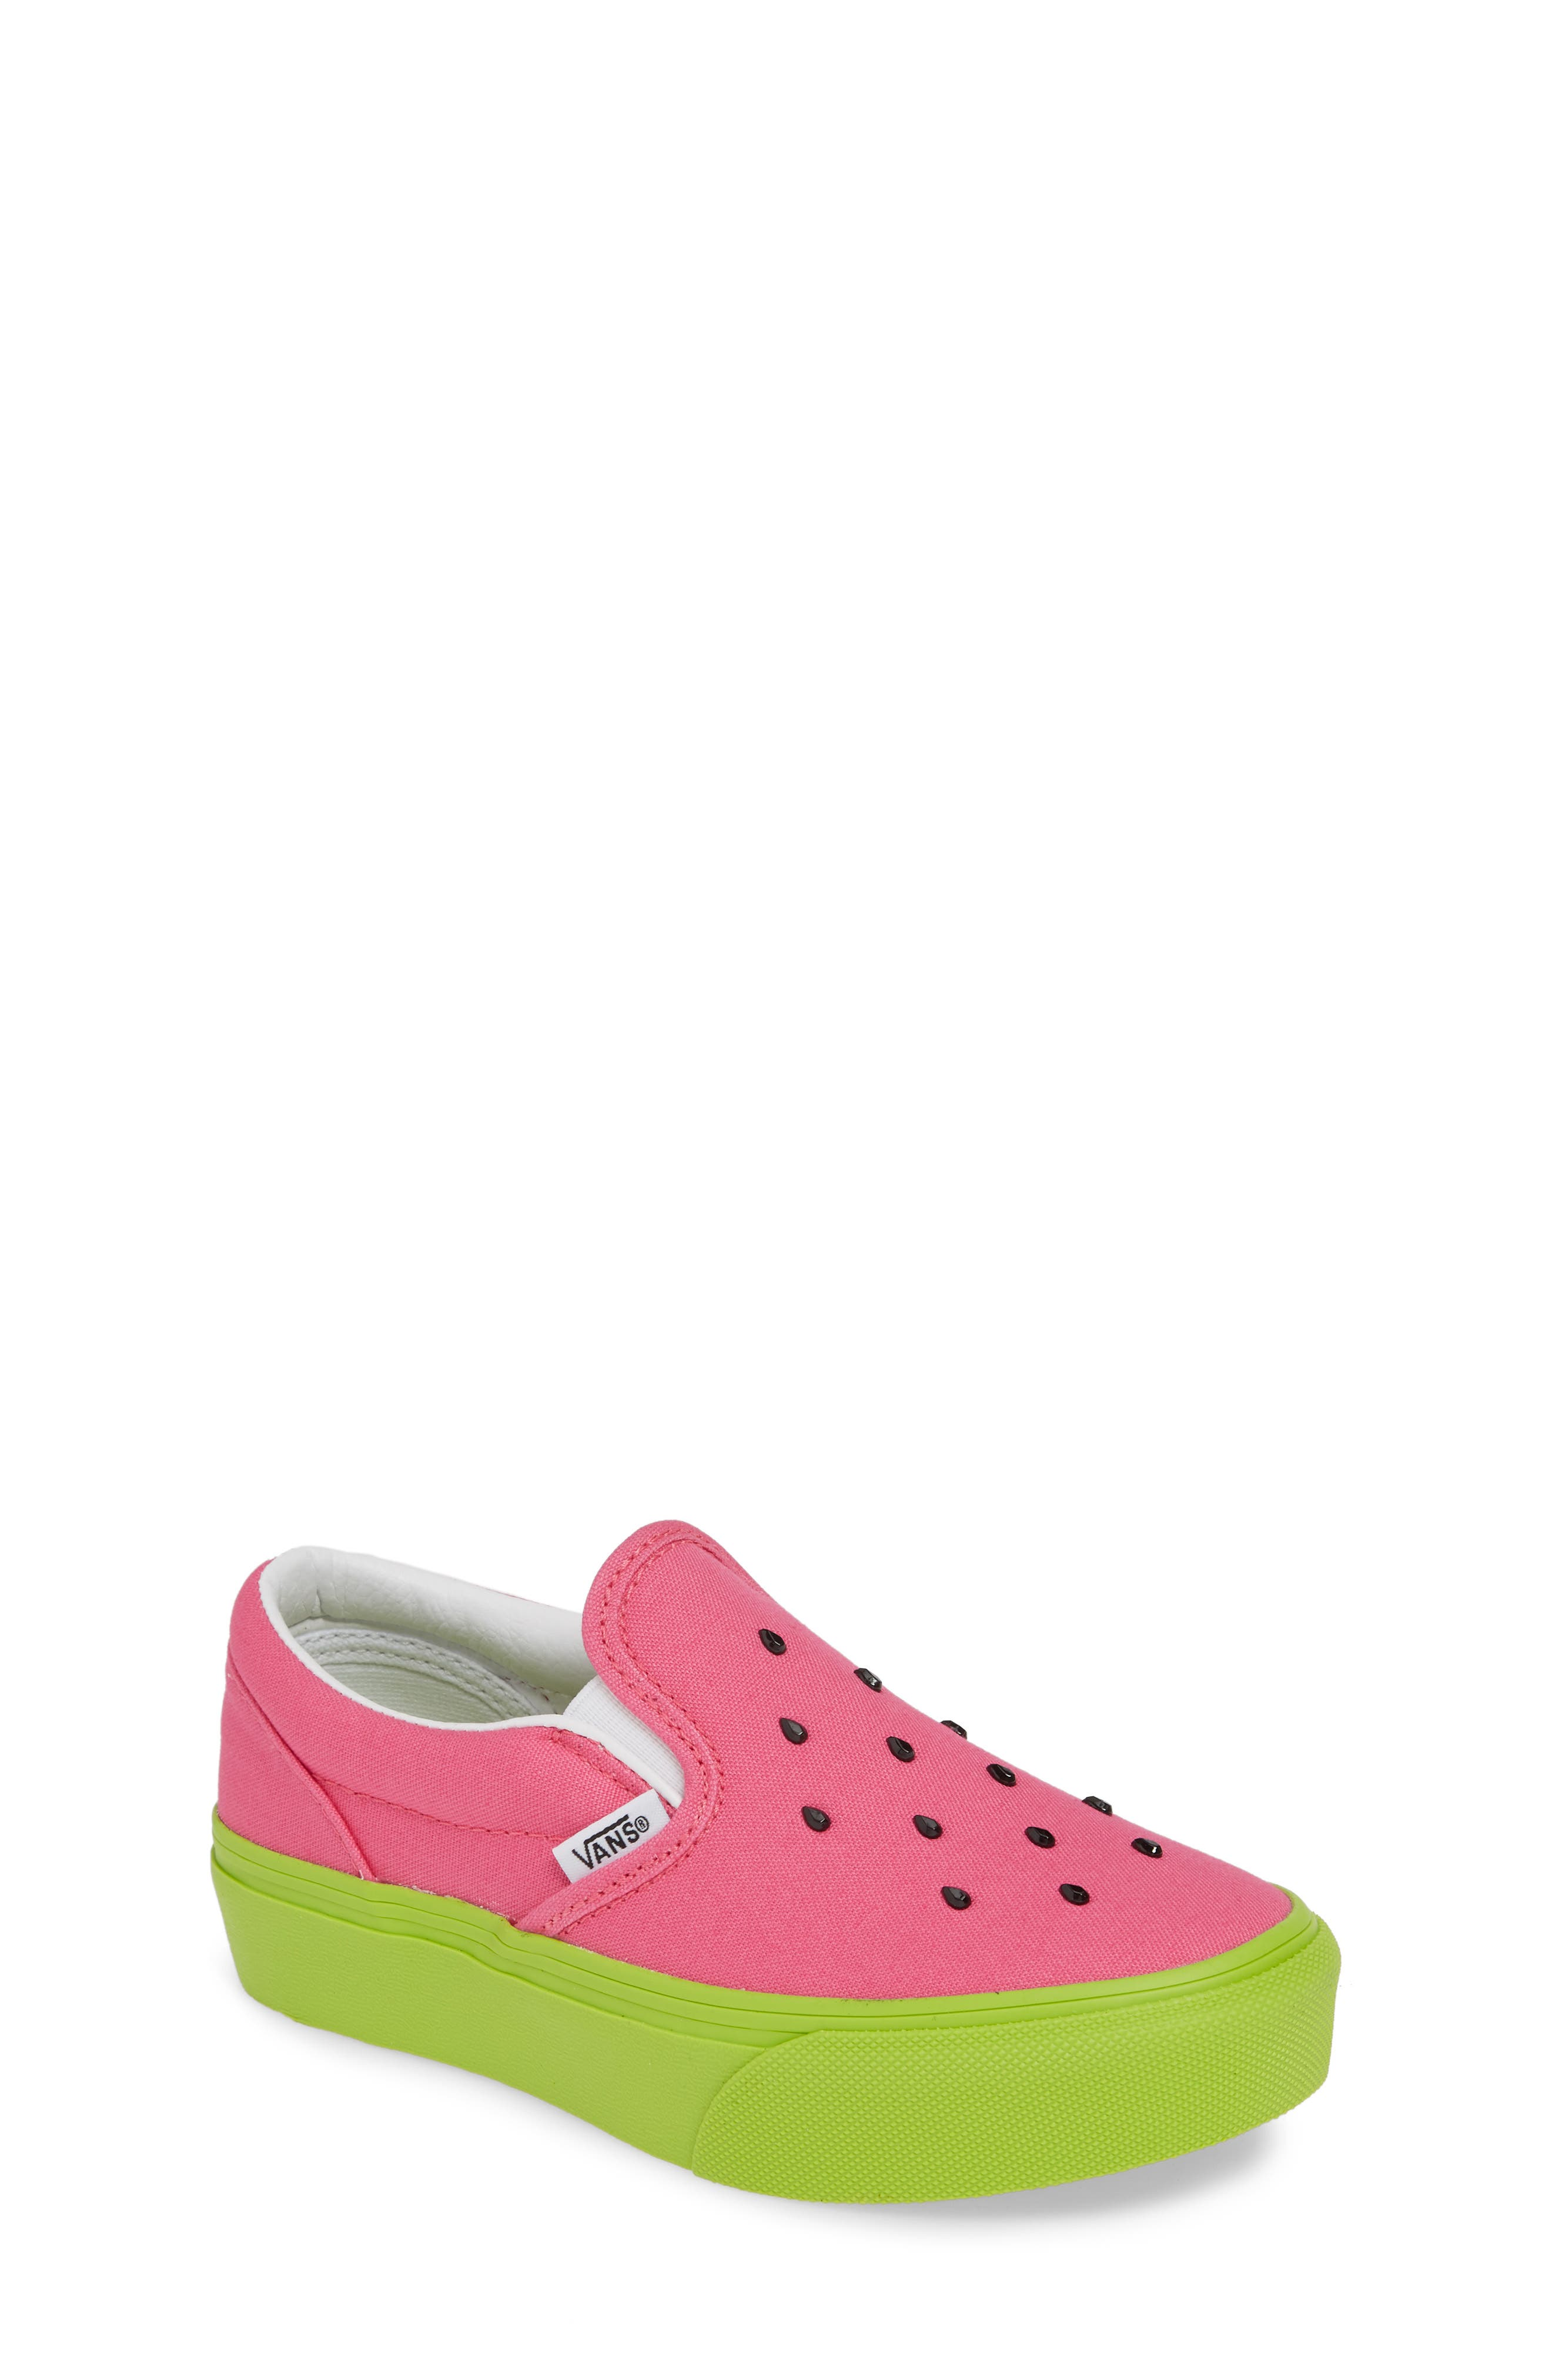 cd699e61fea4 Vans - Girls Sneakers   Athletic Shoes - Kids  Shoes and Boots to ...